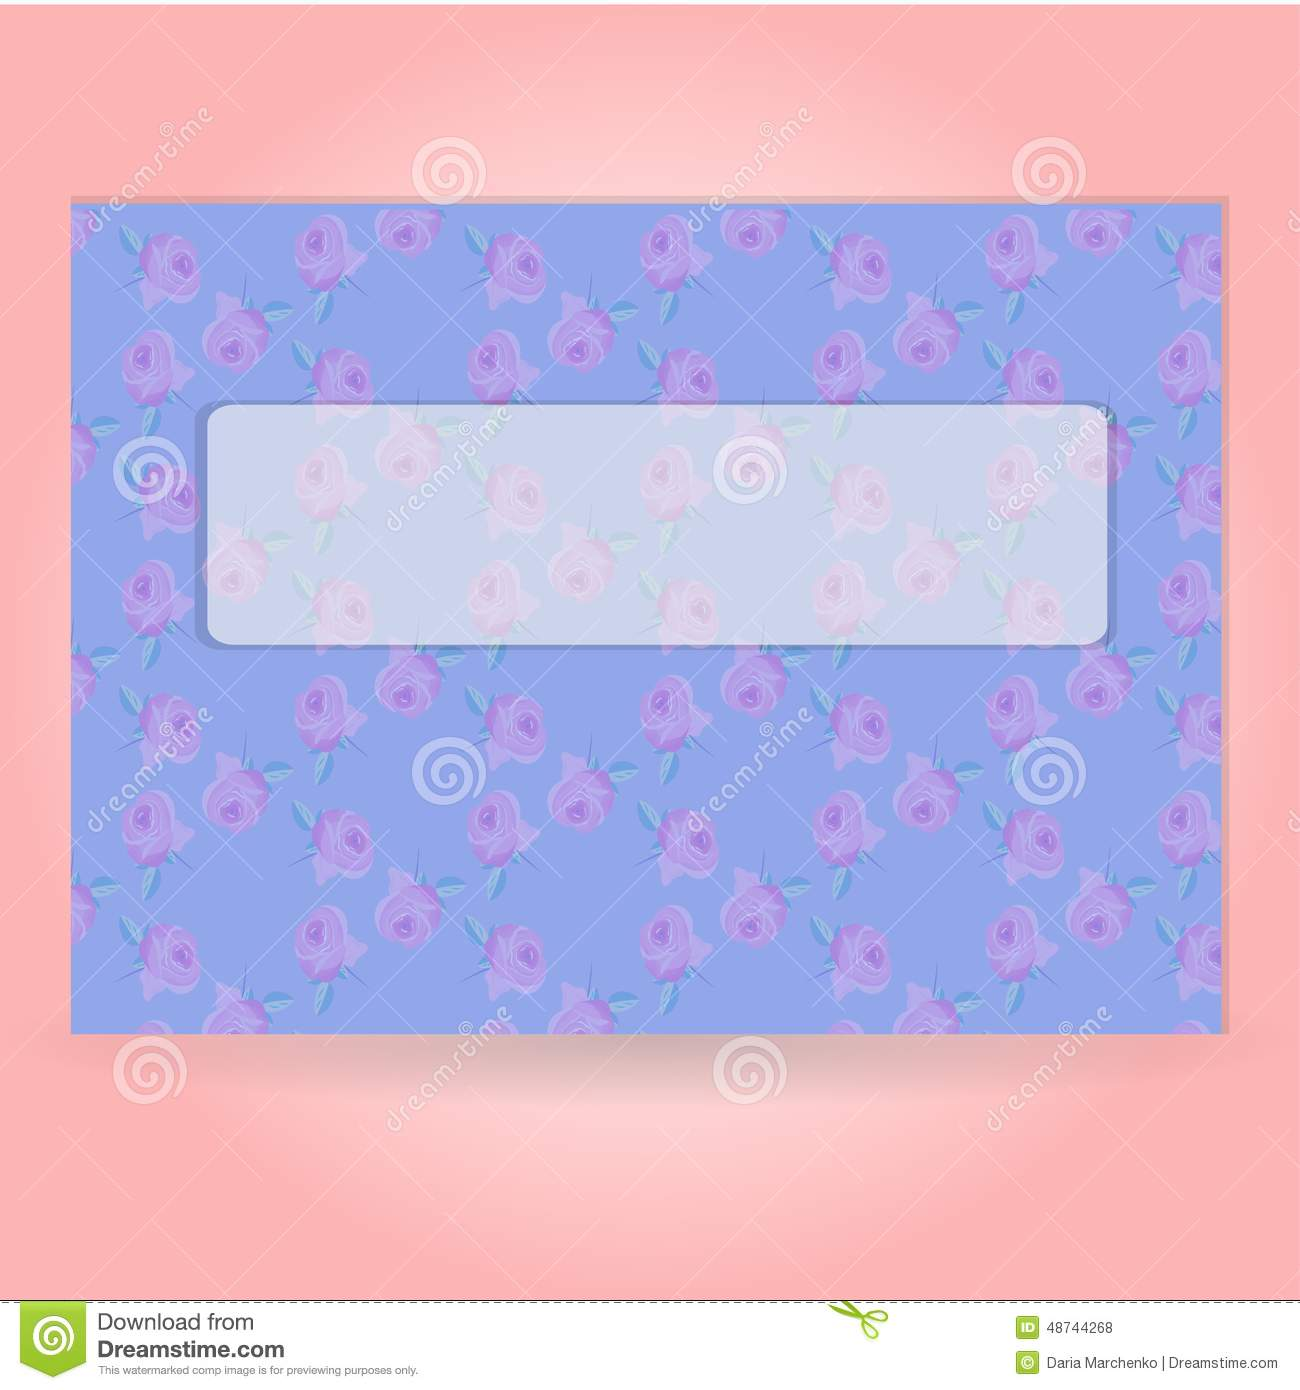 Vintage Romantic Letter Template Stock Vector - Illustration of